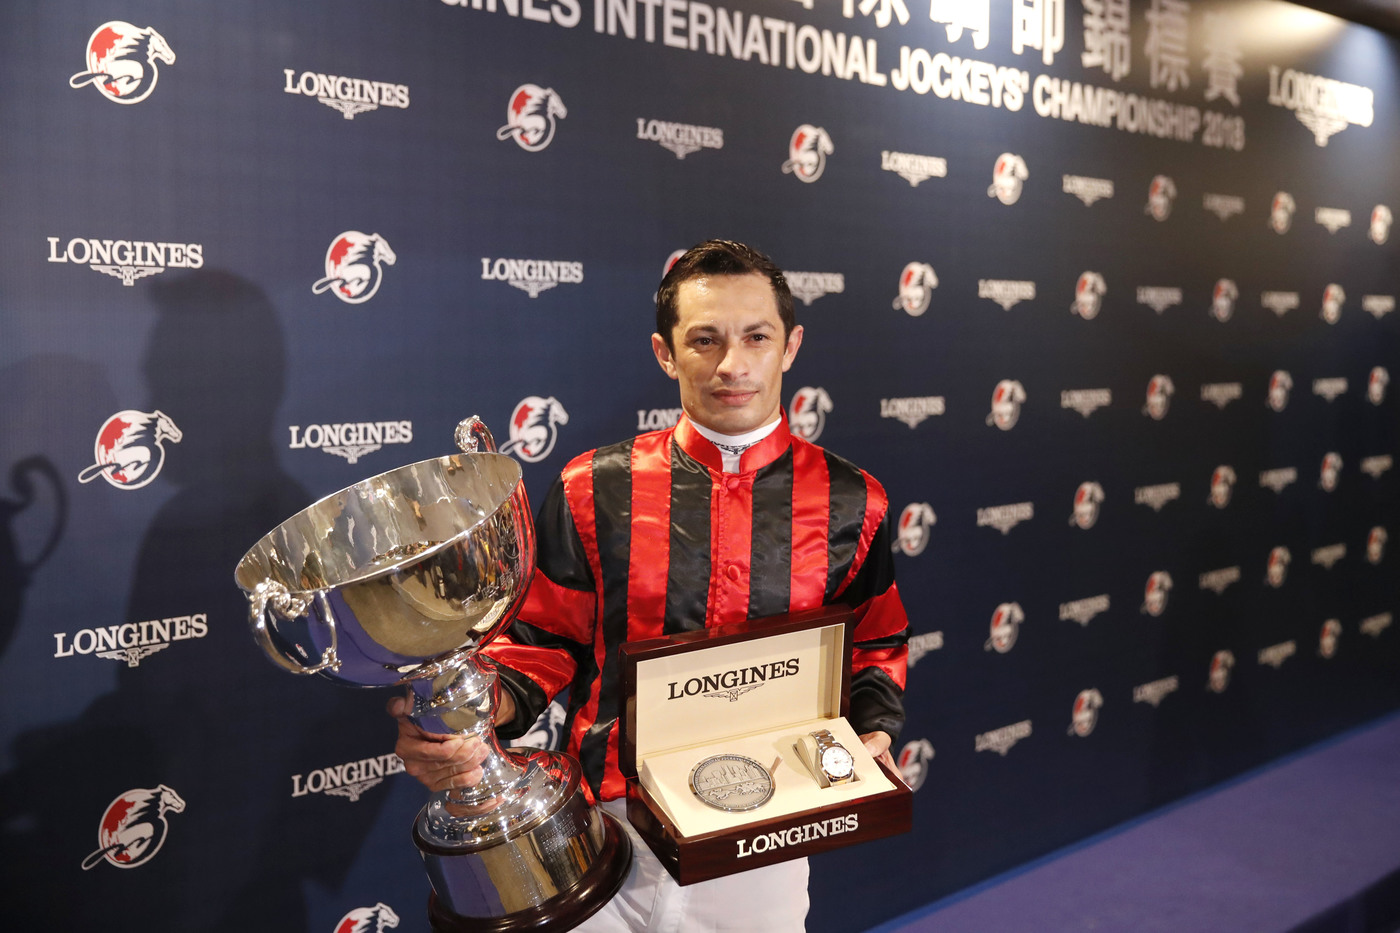 Longines Flat Racing Event: Silvestre de Sousa emerges victorious in the Longines International Jockeys' Championship in Hong Kong 5